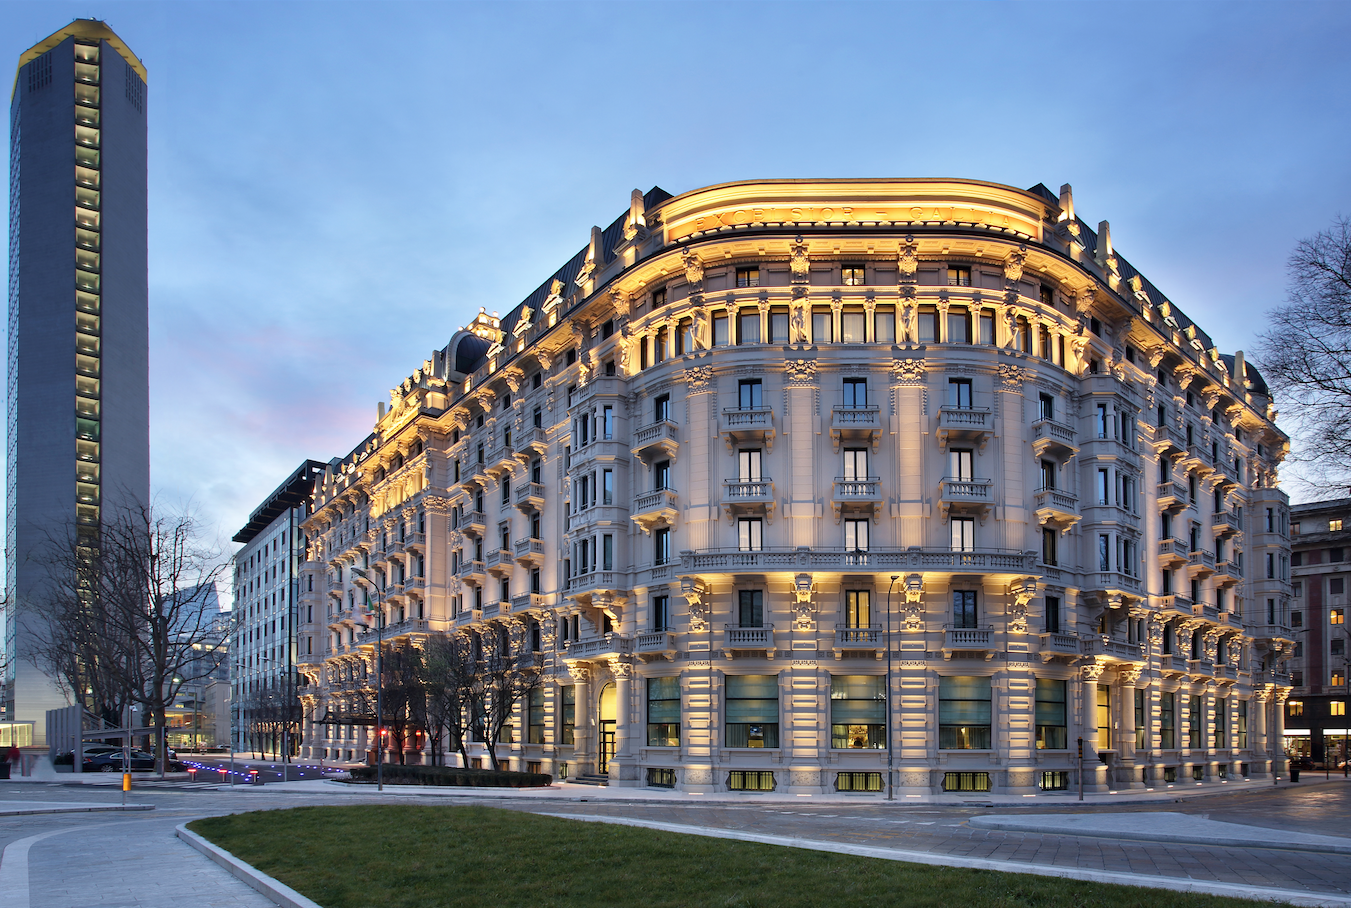 Photo Courtesy of Excelsior Hotel Gallia, a Luxury Collection Hotel, Milan